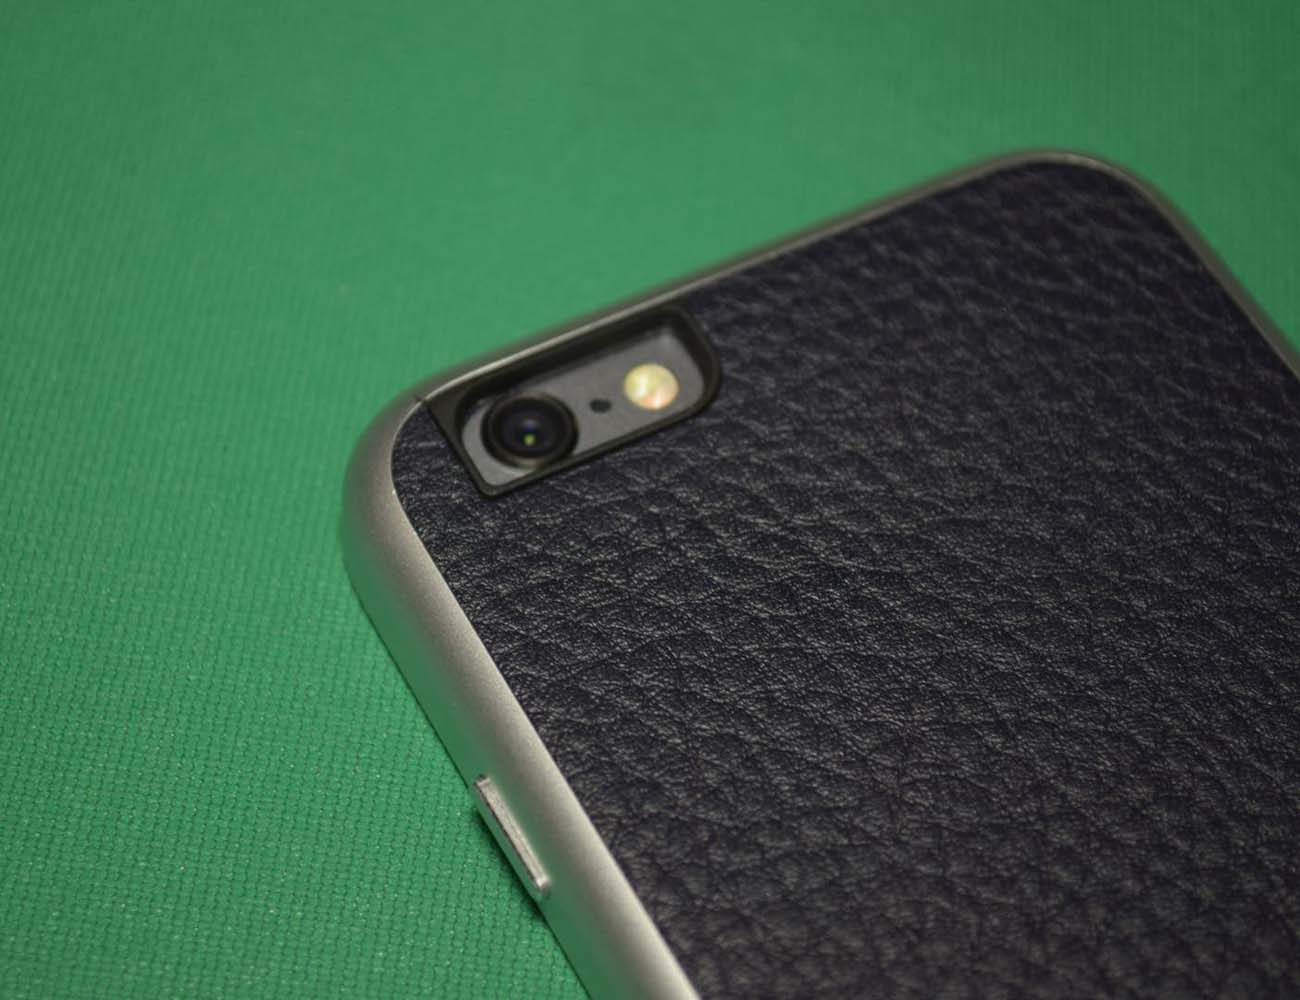 AluFrame Leather iPhone 6 Case loading=